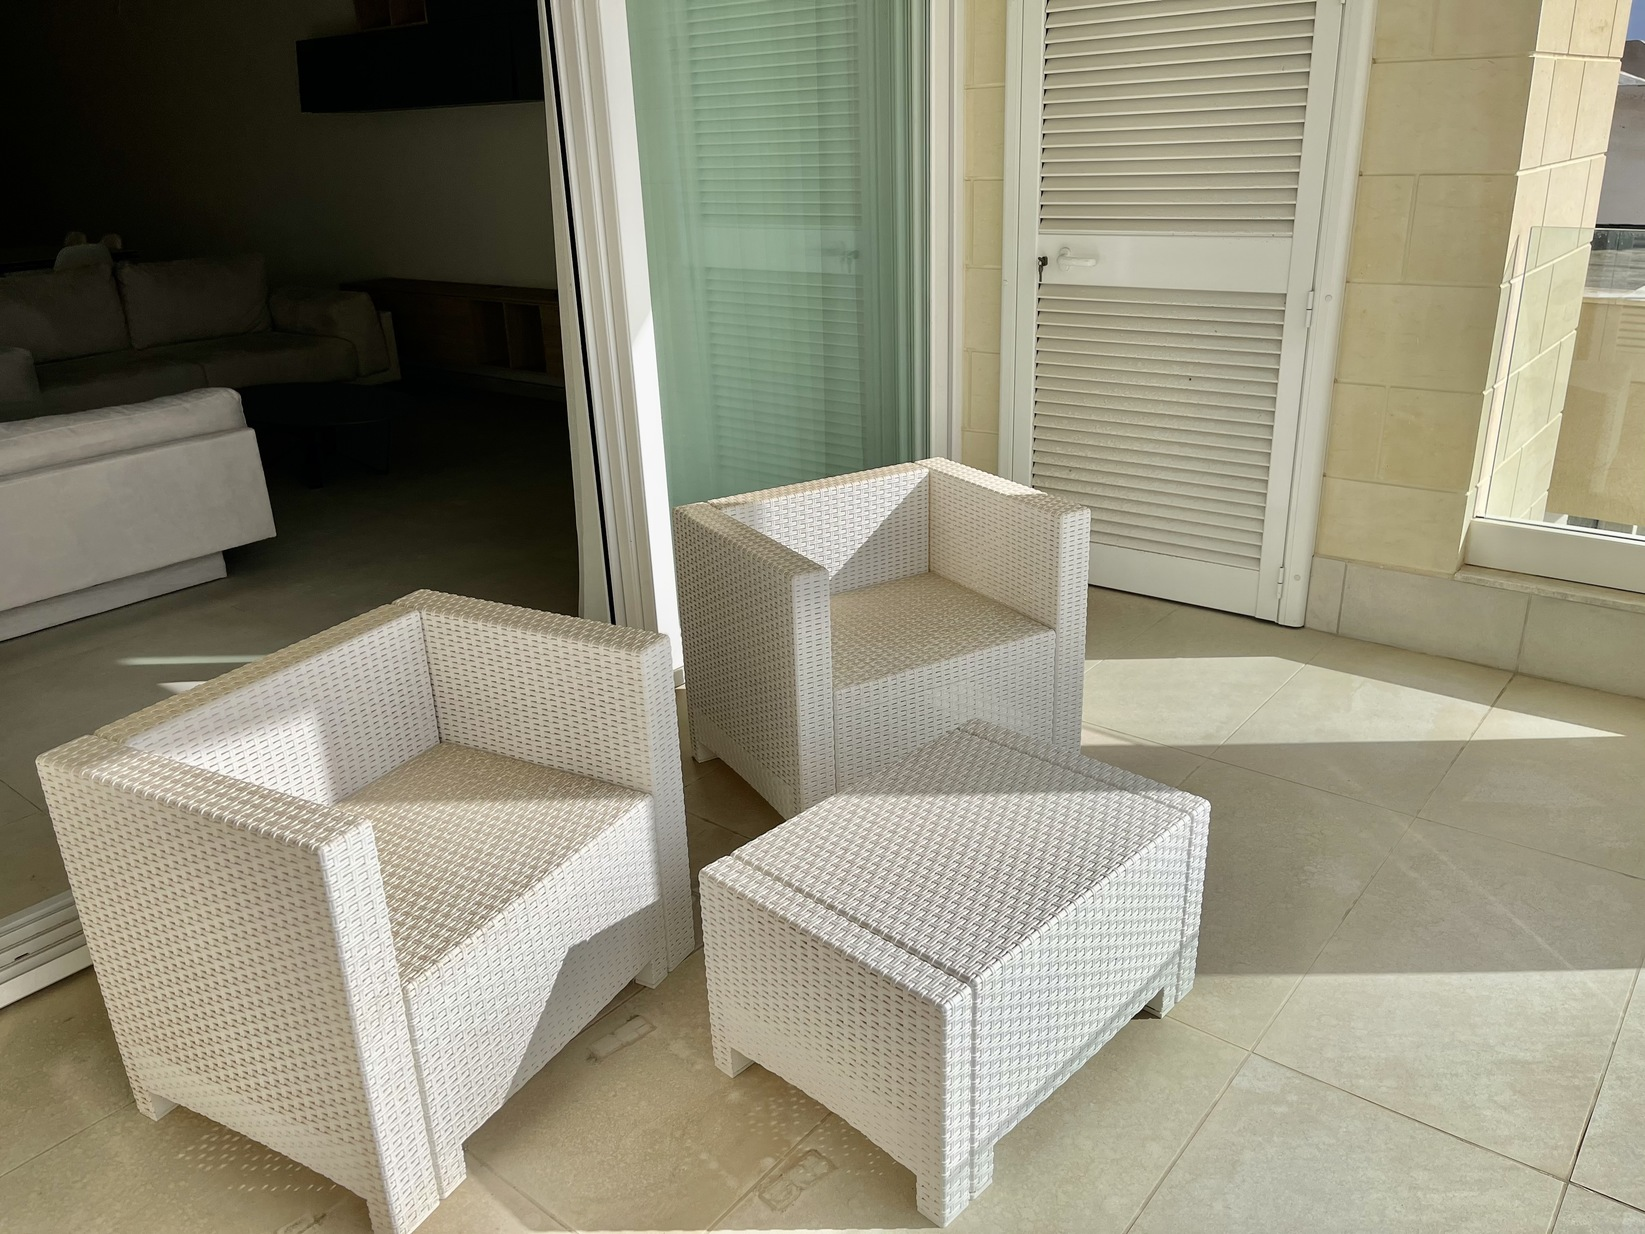 2 bed Apartment For Rent in Swieqi, Swieqi - thumb 19